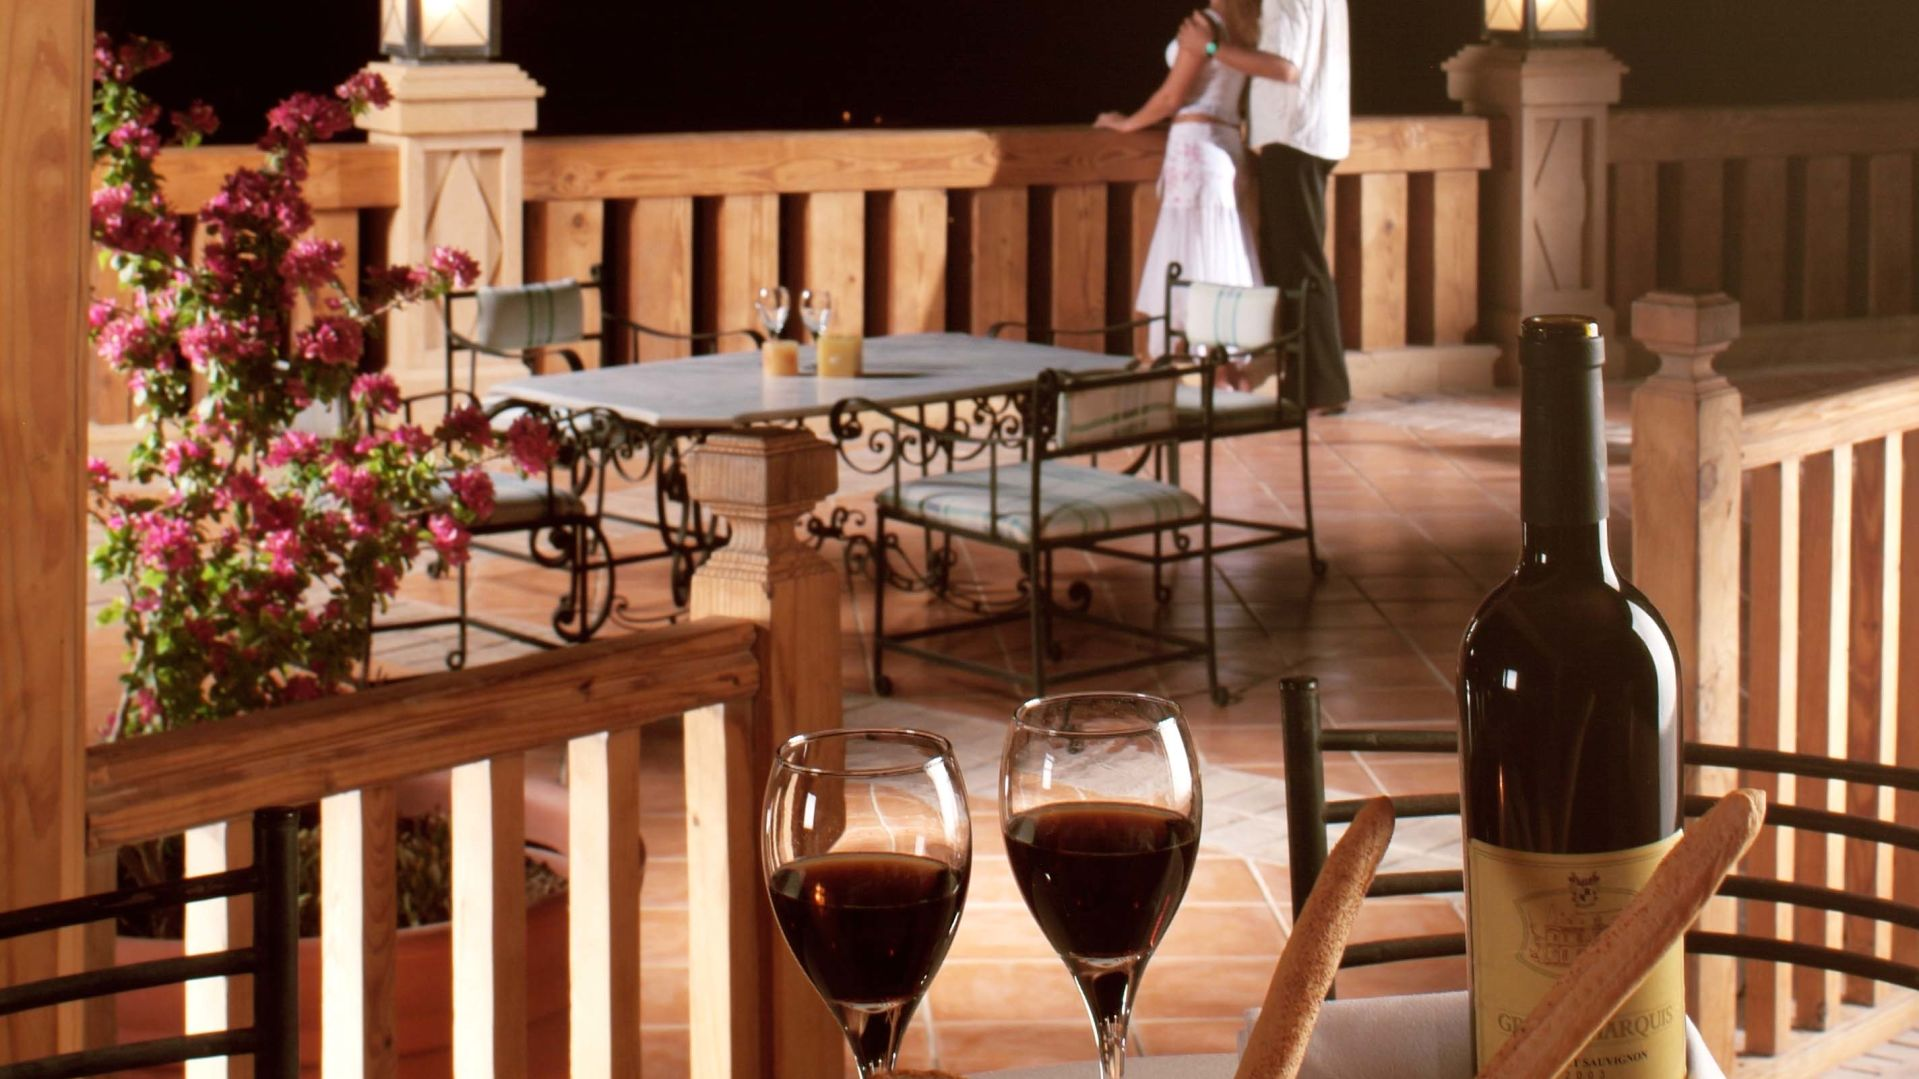 A Dining Table With A Glass Of Wine